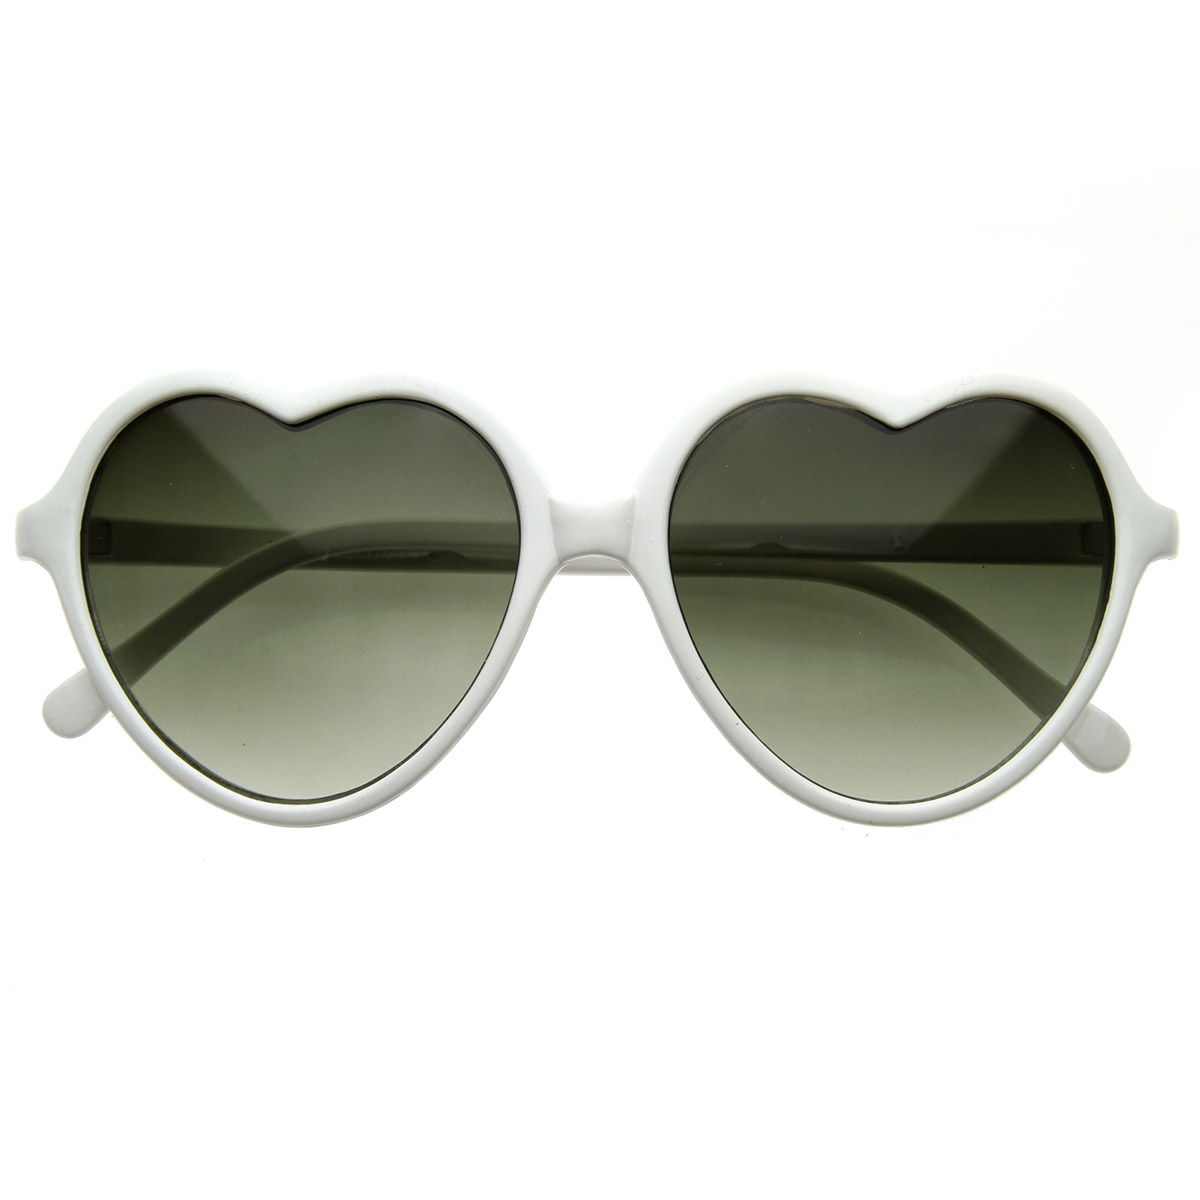 Large Framed Fashion Glasses : Large Oversized Thin Frame Lovely Heart Shaped Womens ...